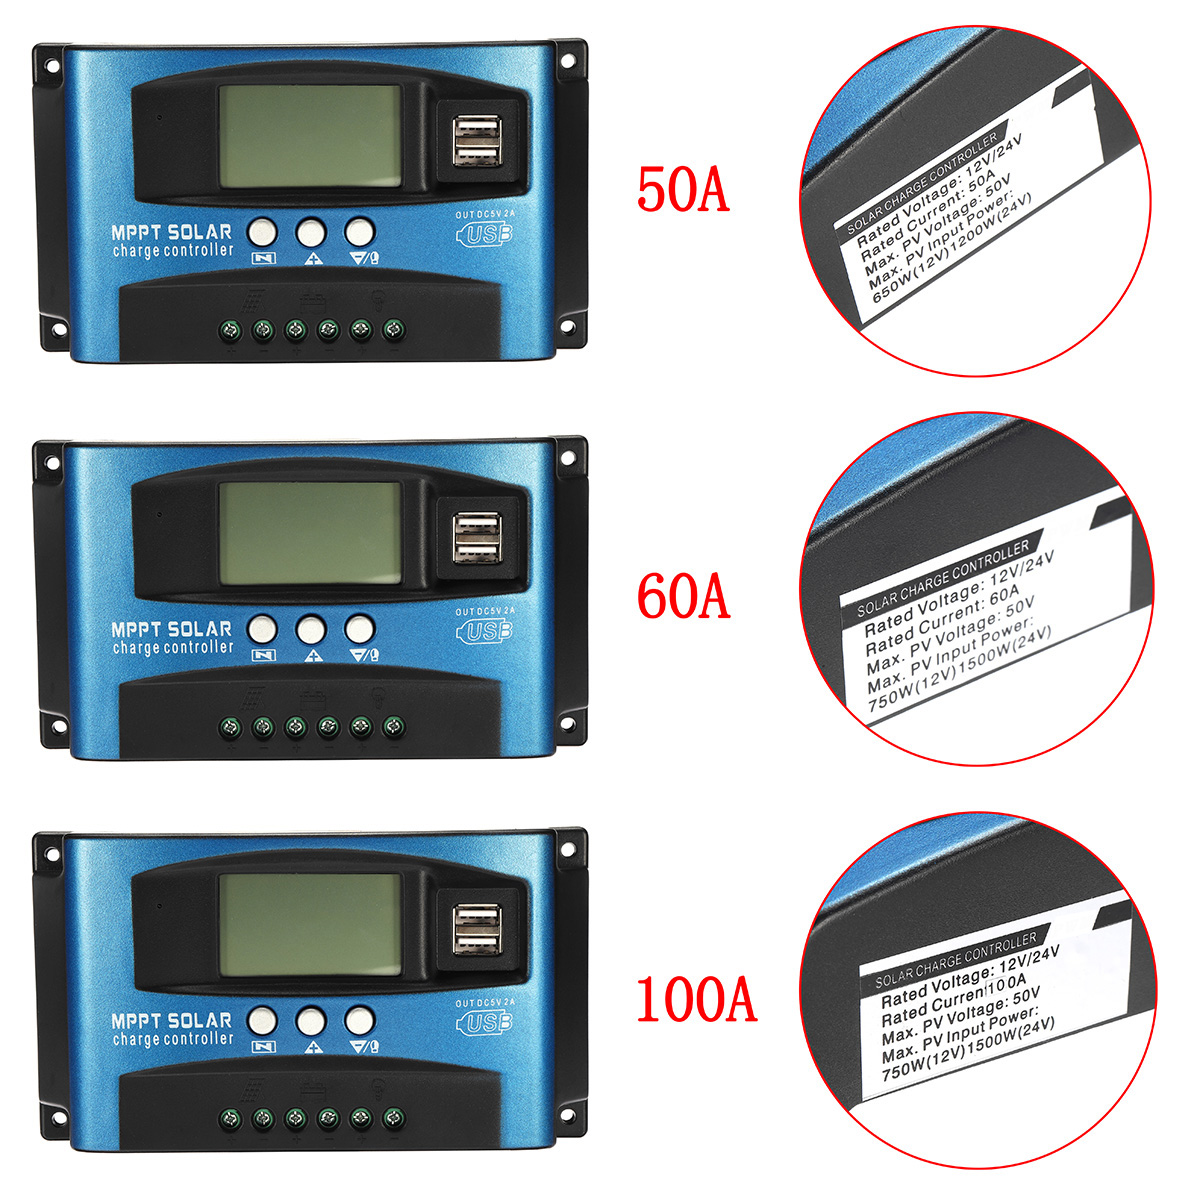 30/40/50/60/100A MPPT Solar Controller LCD Solar Charge Controller Accuracy Dual USB Solar Panel Battery Regulator 18